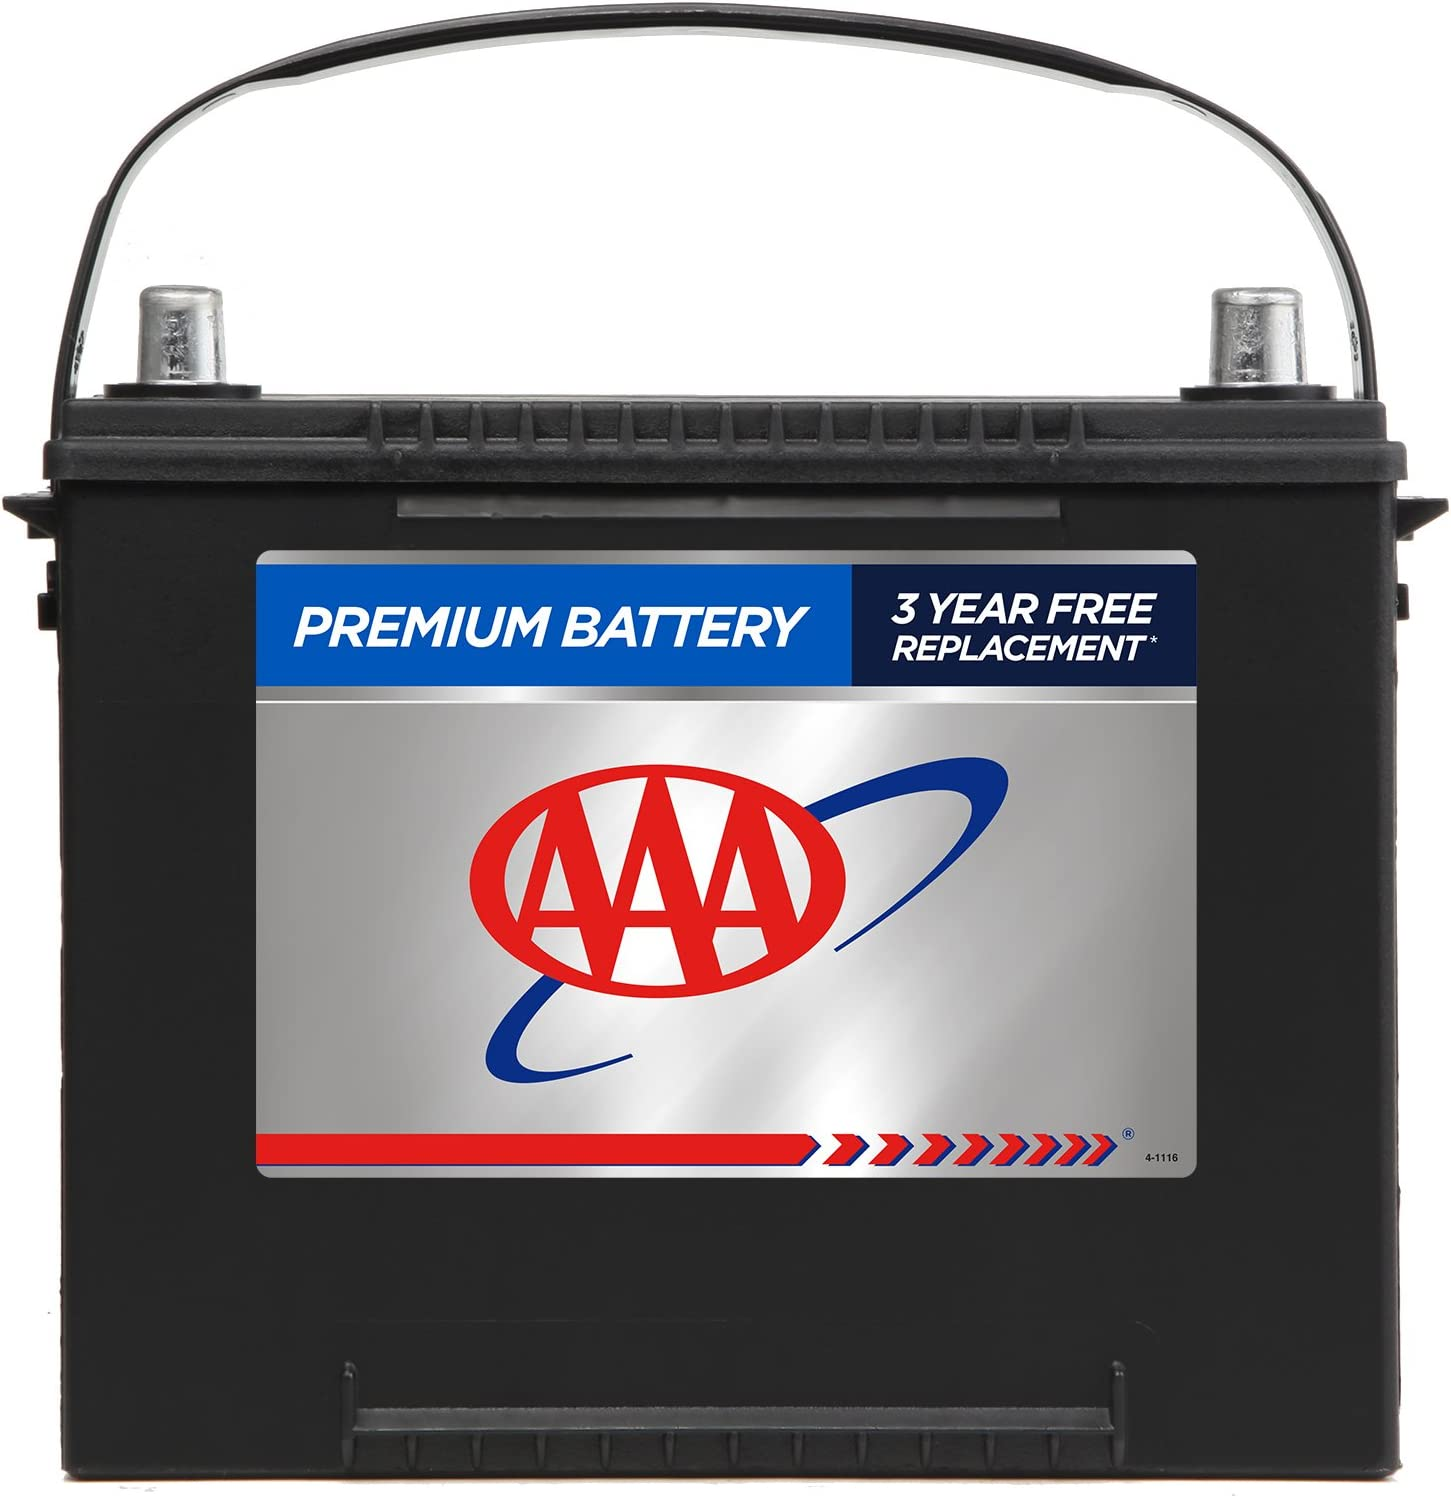 AAA Car Battery Delivery and Installation, GP 24F, 3-year Warranty ...